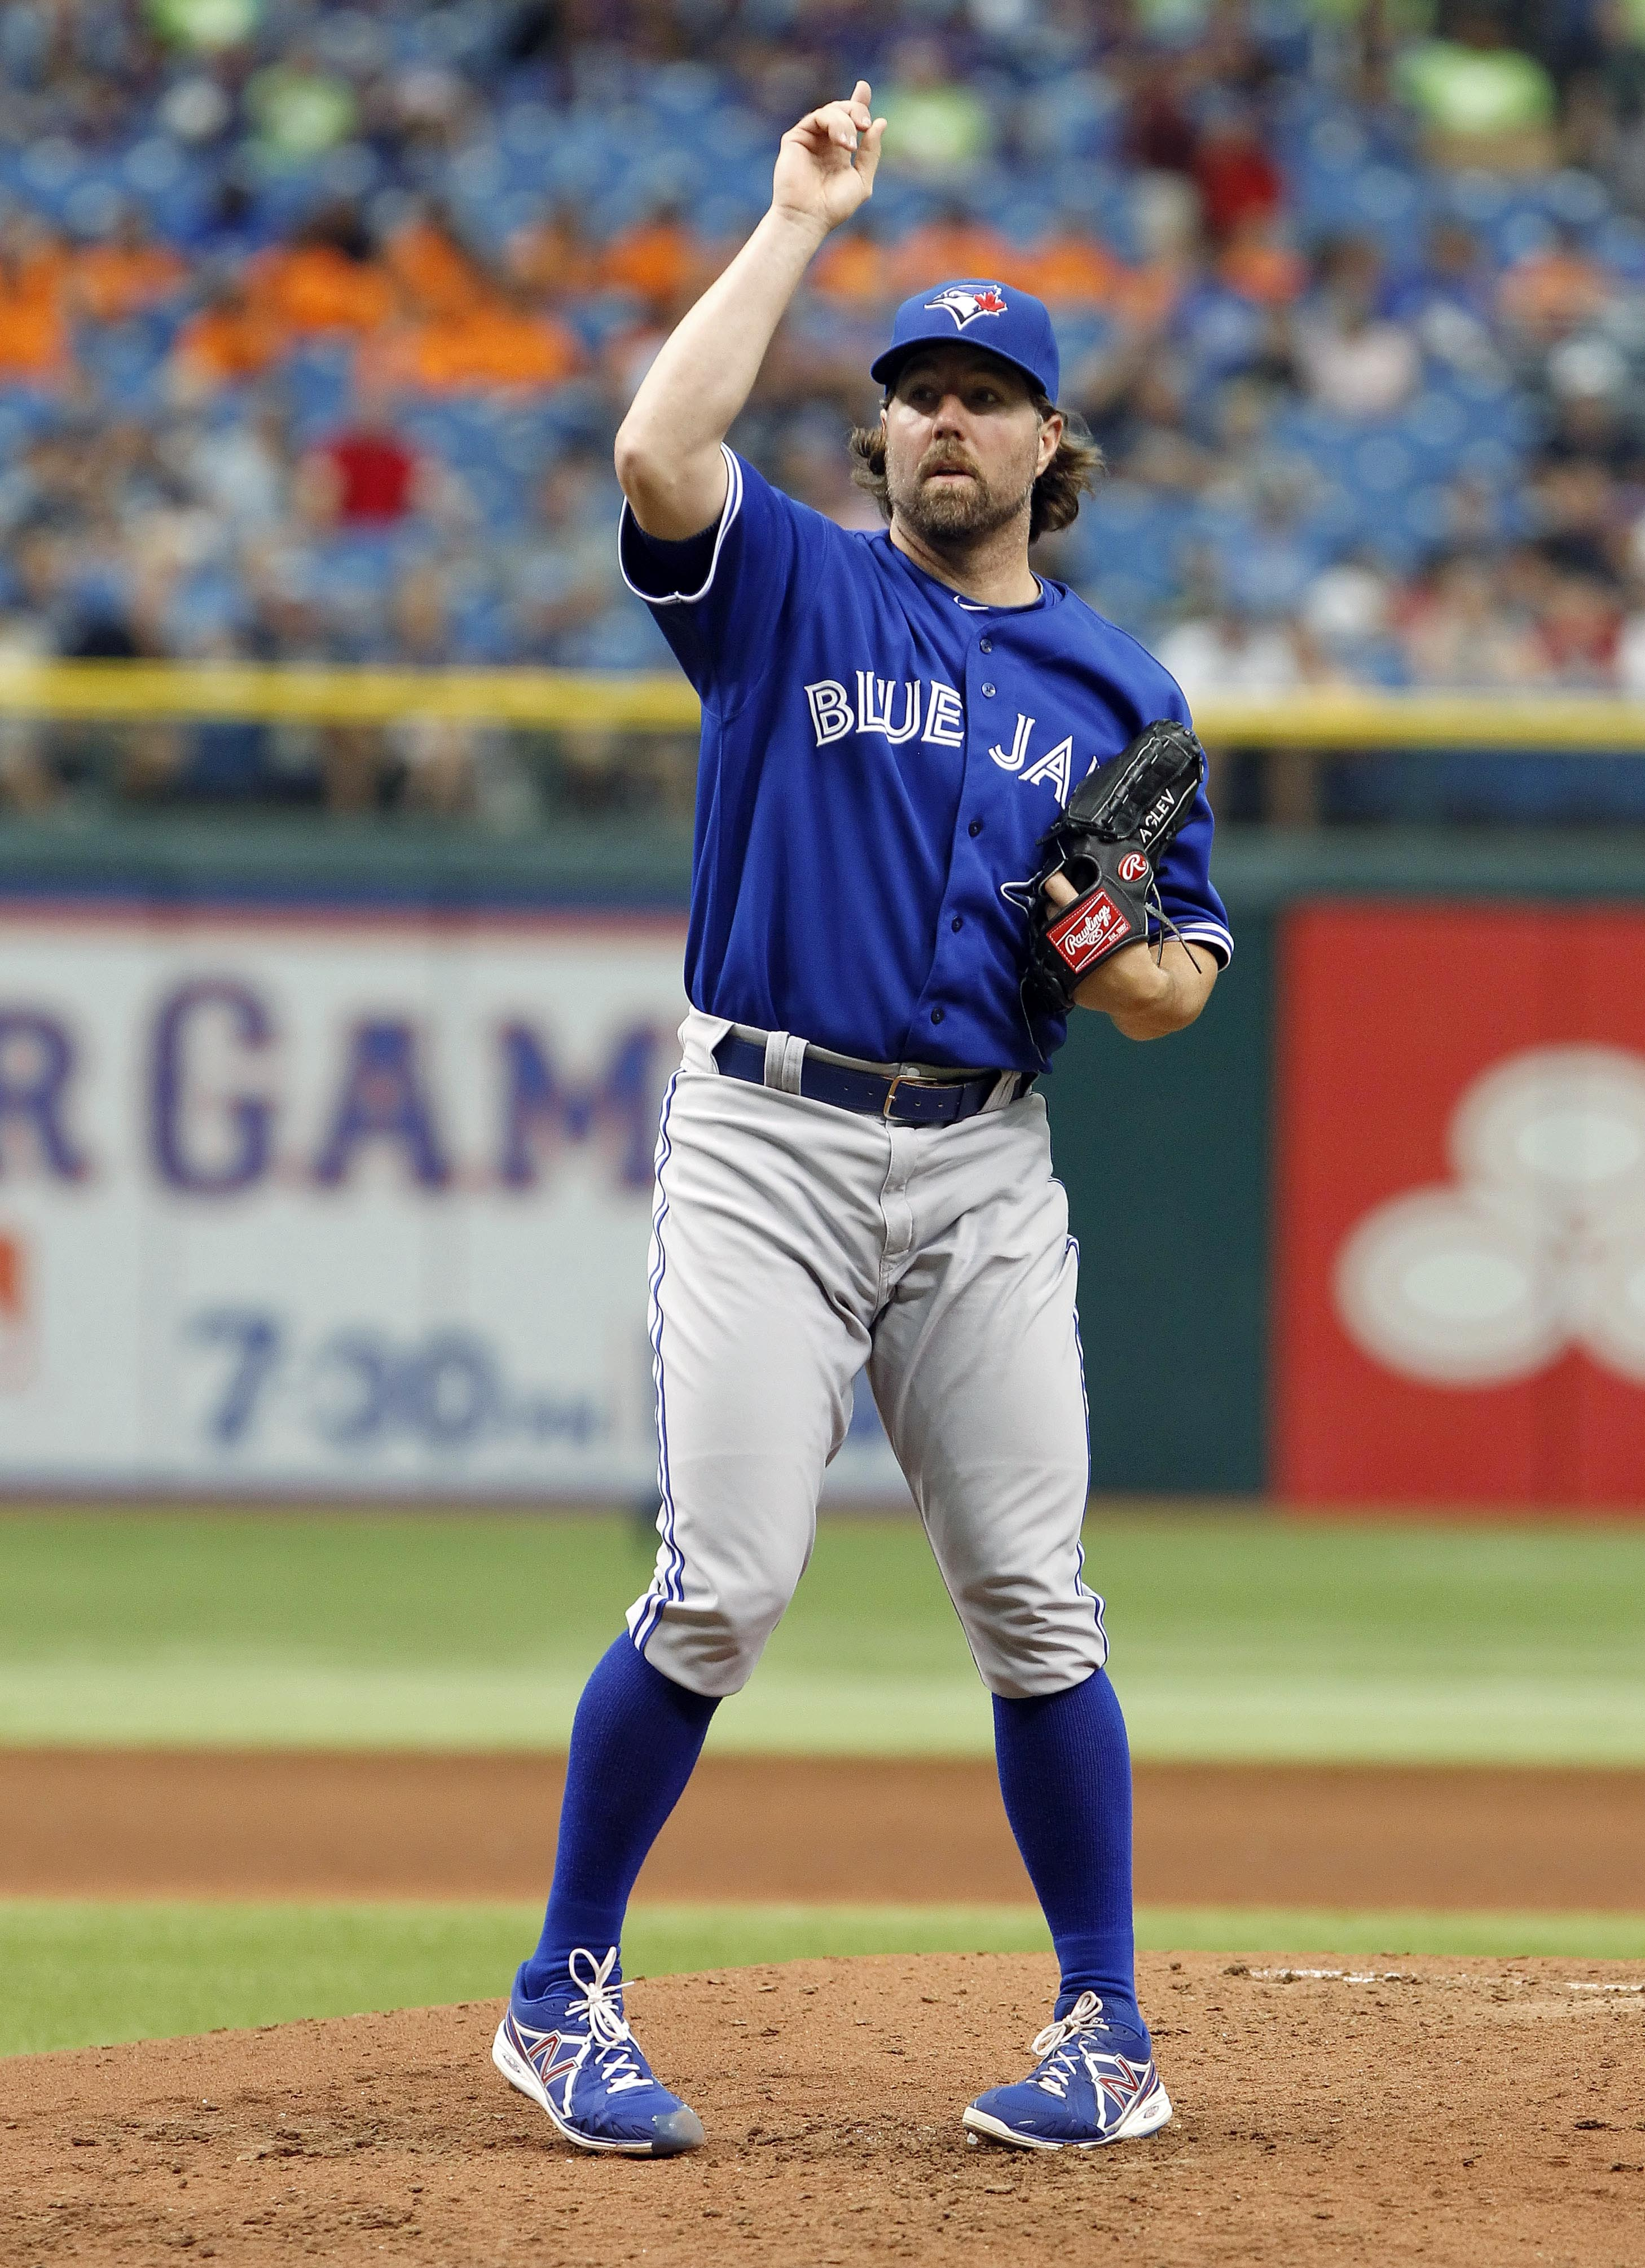 R.A. Dickey hopes to use his two-hitter against the Rays as a spring board in improving his season. (USA Today Sports)